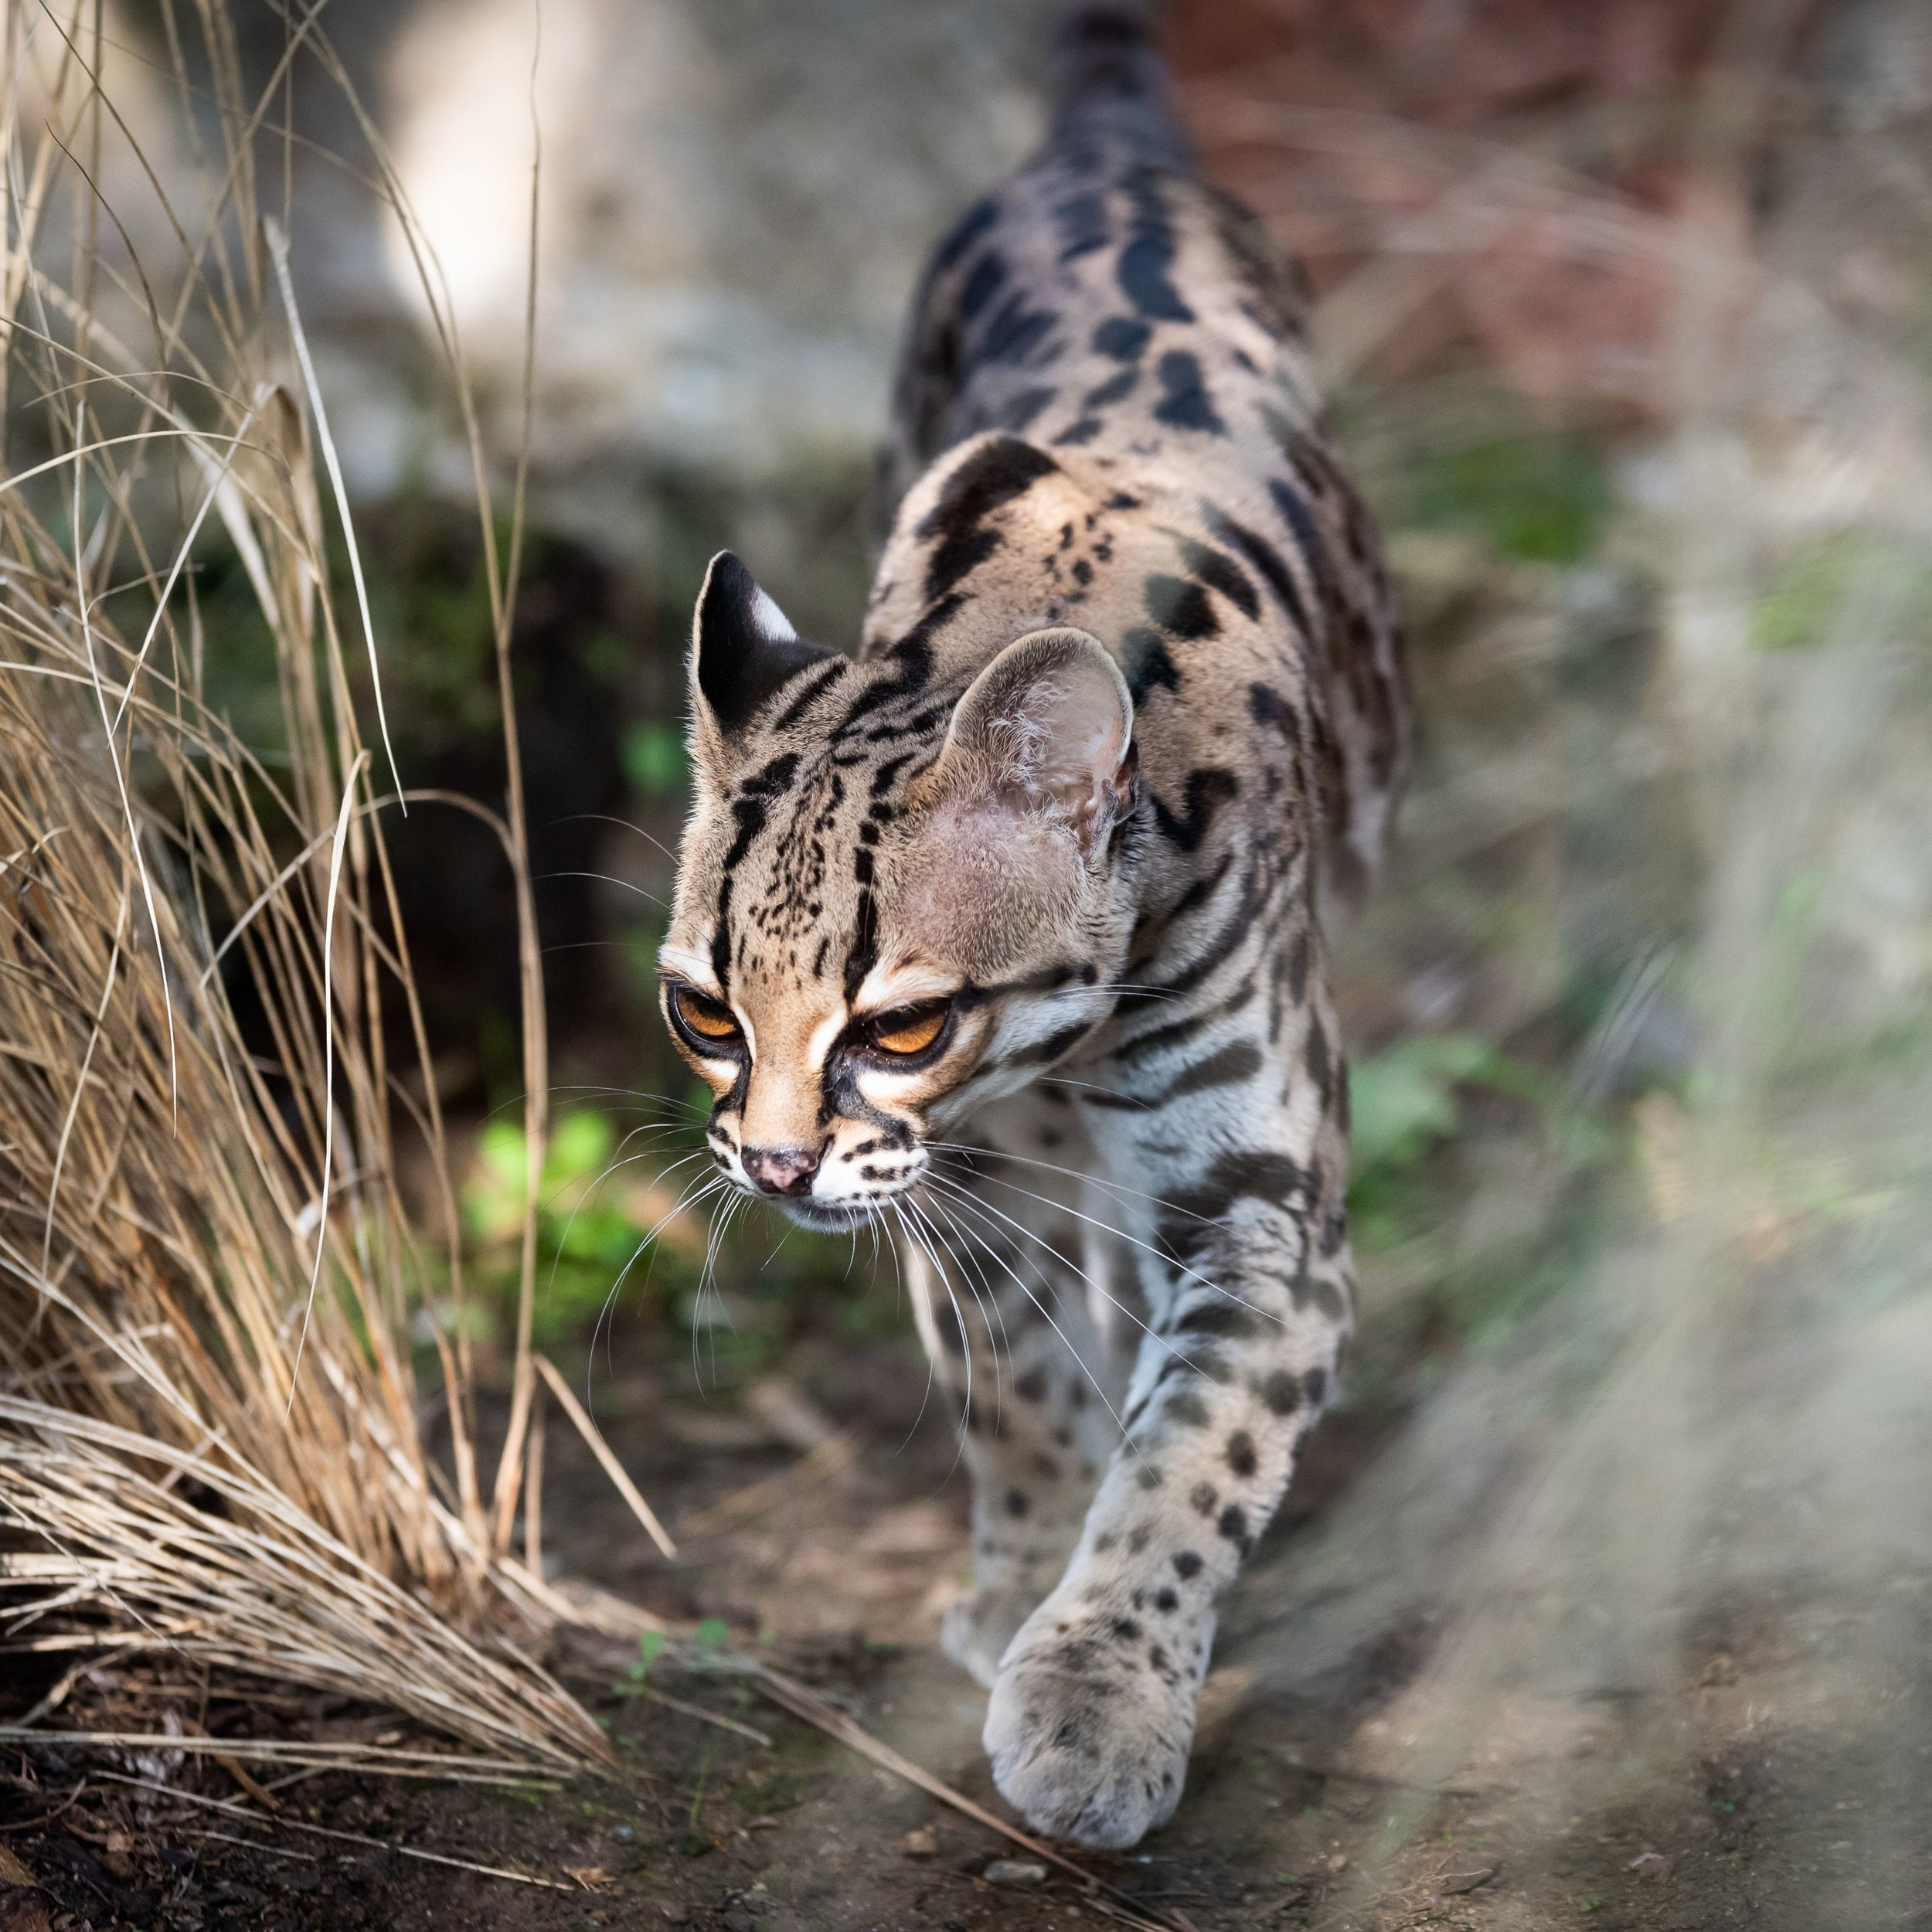 close-up-of-ocelot-by-plant-1127563331-5c893fe446e0fb0001431a81.jpg